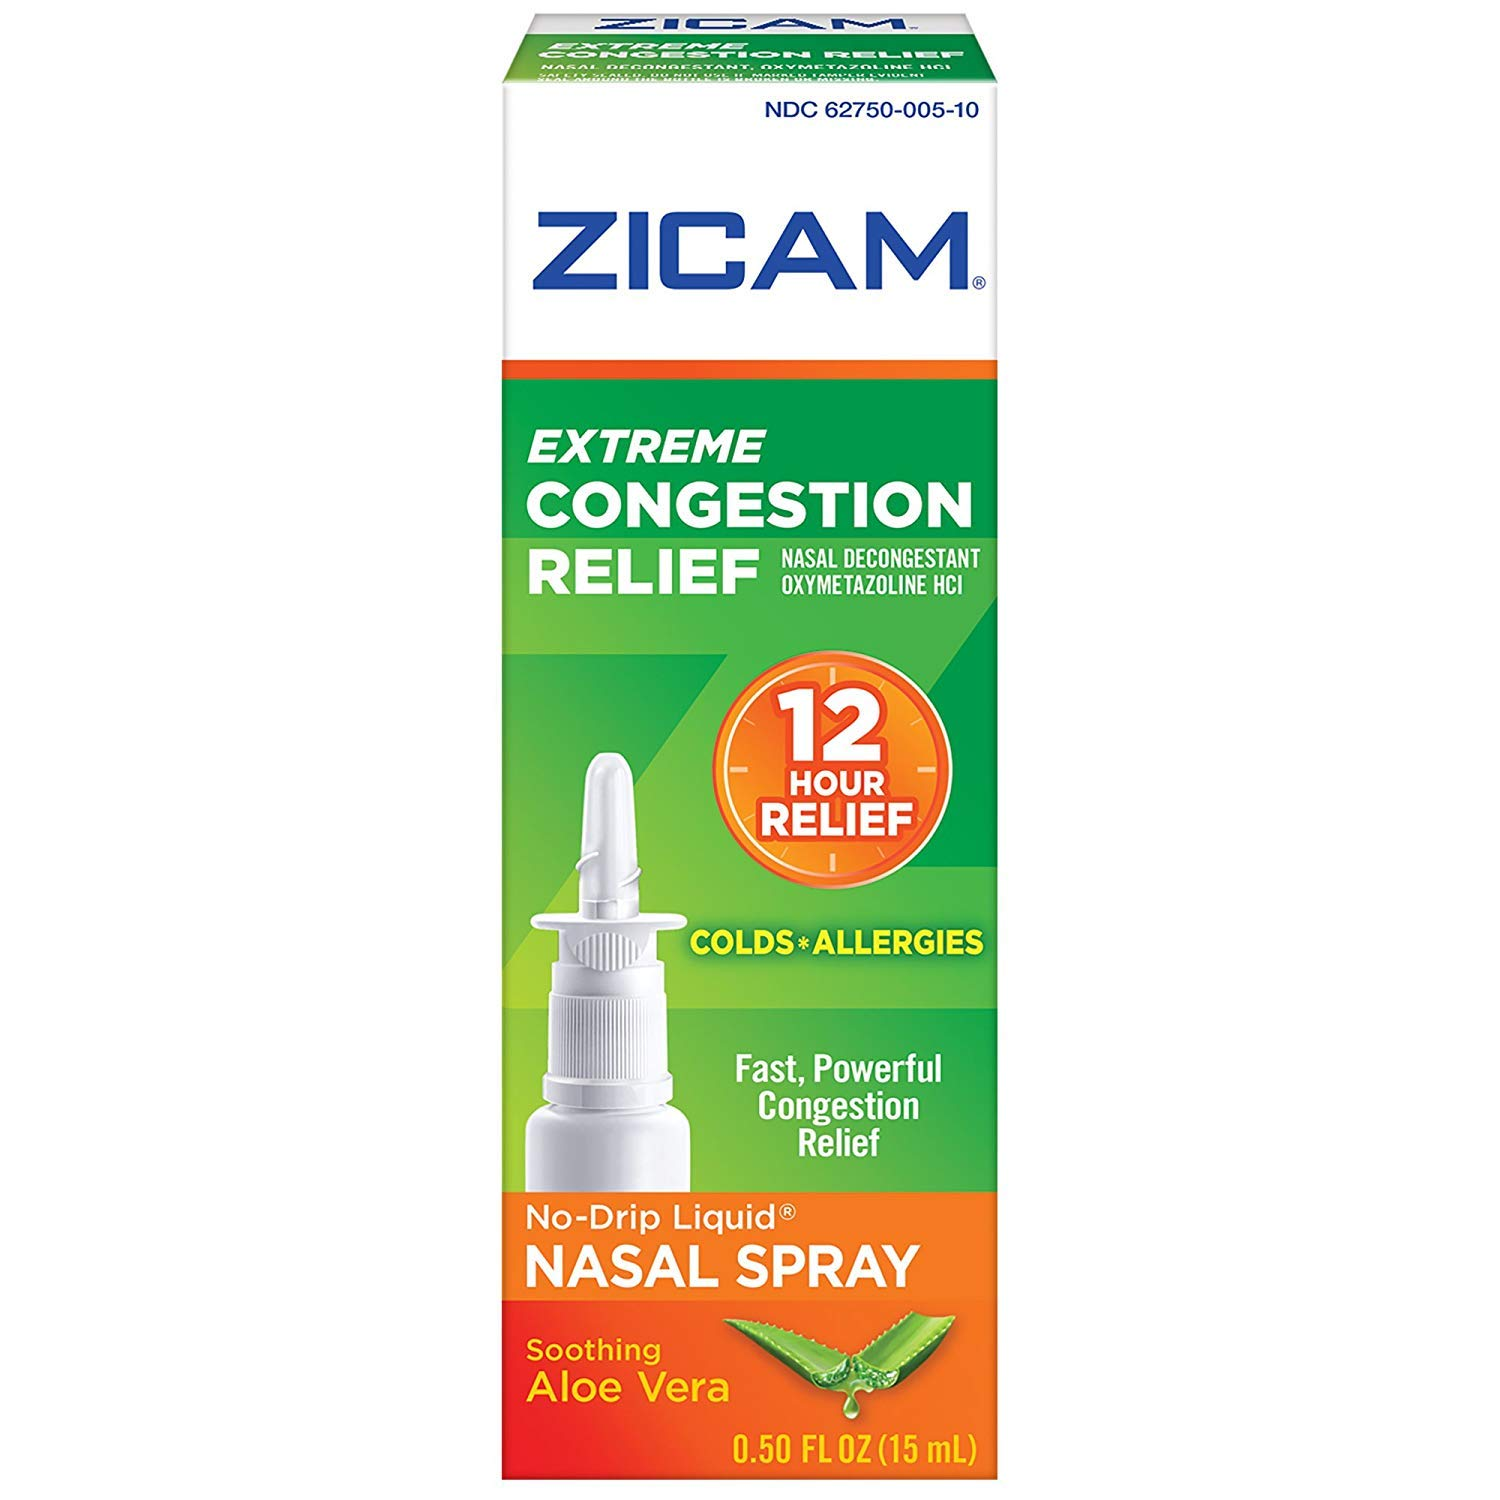 Zicam Extreme Congestion Relief Liquid Nasal Gel - 0.5 oz, Pack of 5 by Zicam